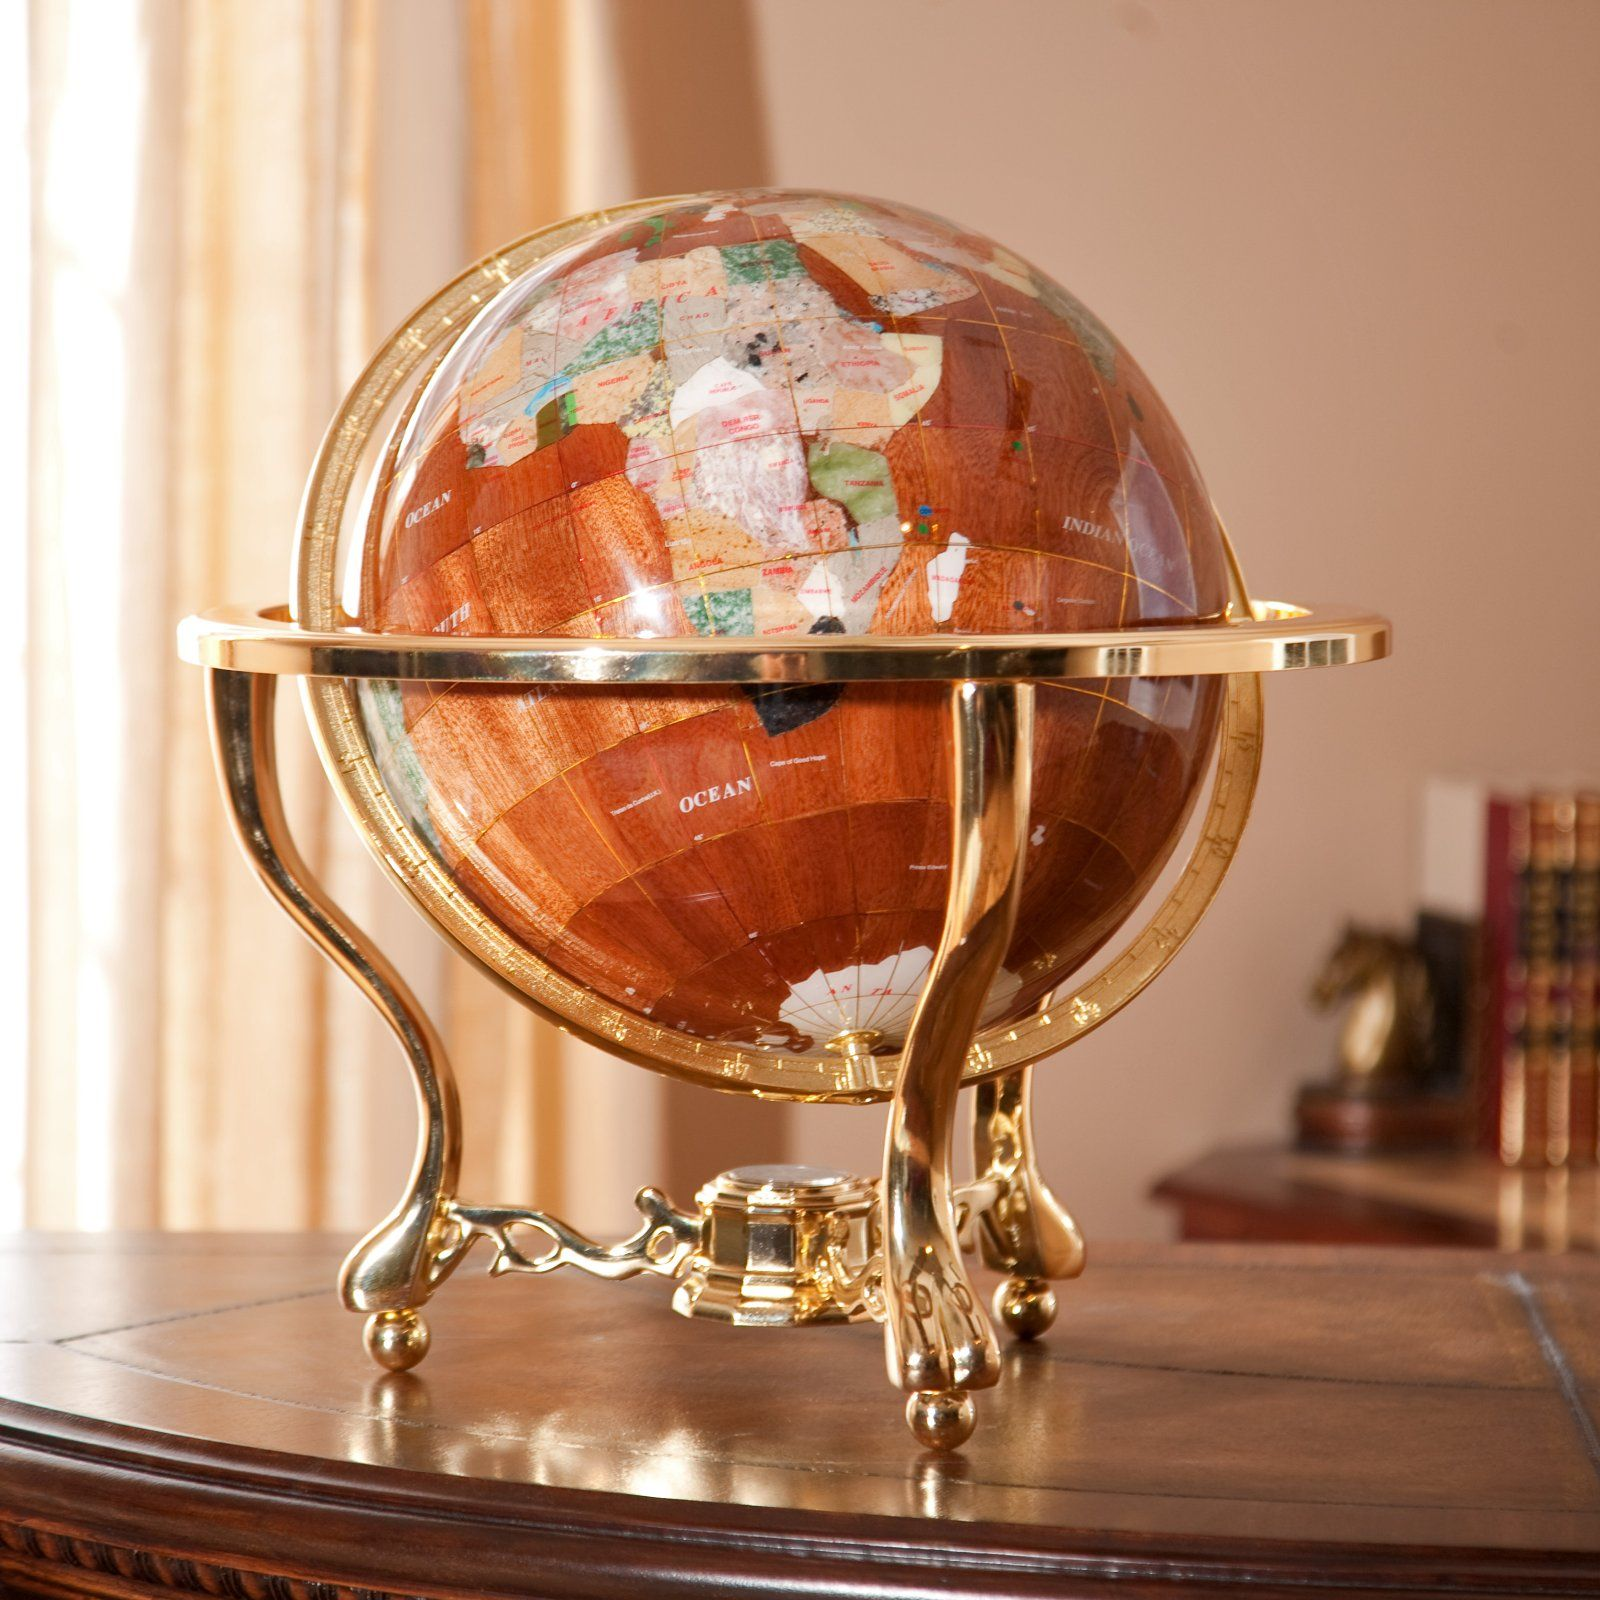 Wood gemstone 13 inch table top globe gemstone globes at world wood gemstone 13 inch table top globe gemstone globes at world globes gumiabroncs Image collections